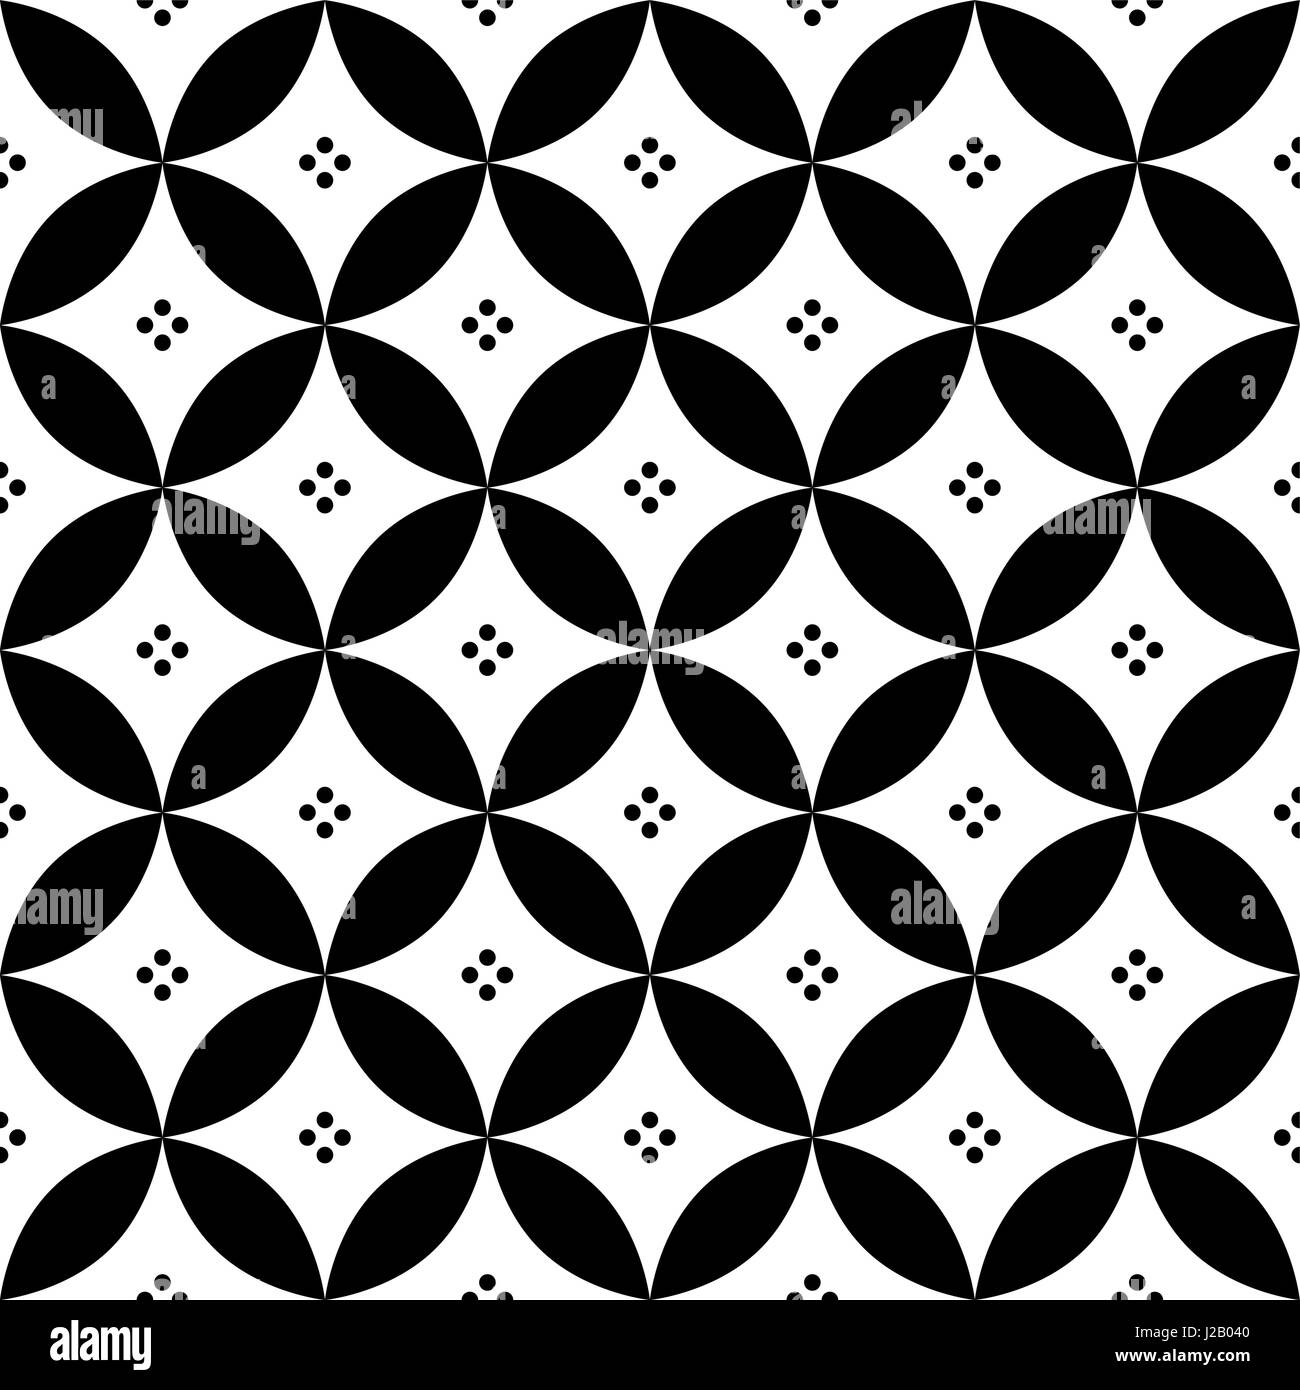 https www alamy com stock photo geometric seamless pattern in black and white inspired by spanish 139153840 html